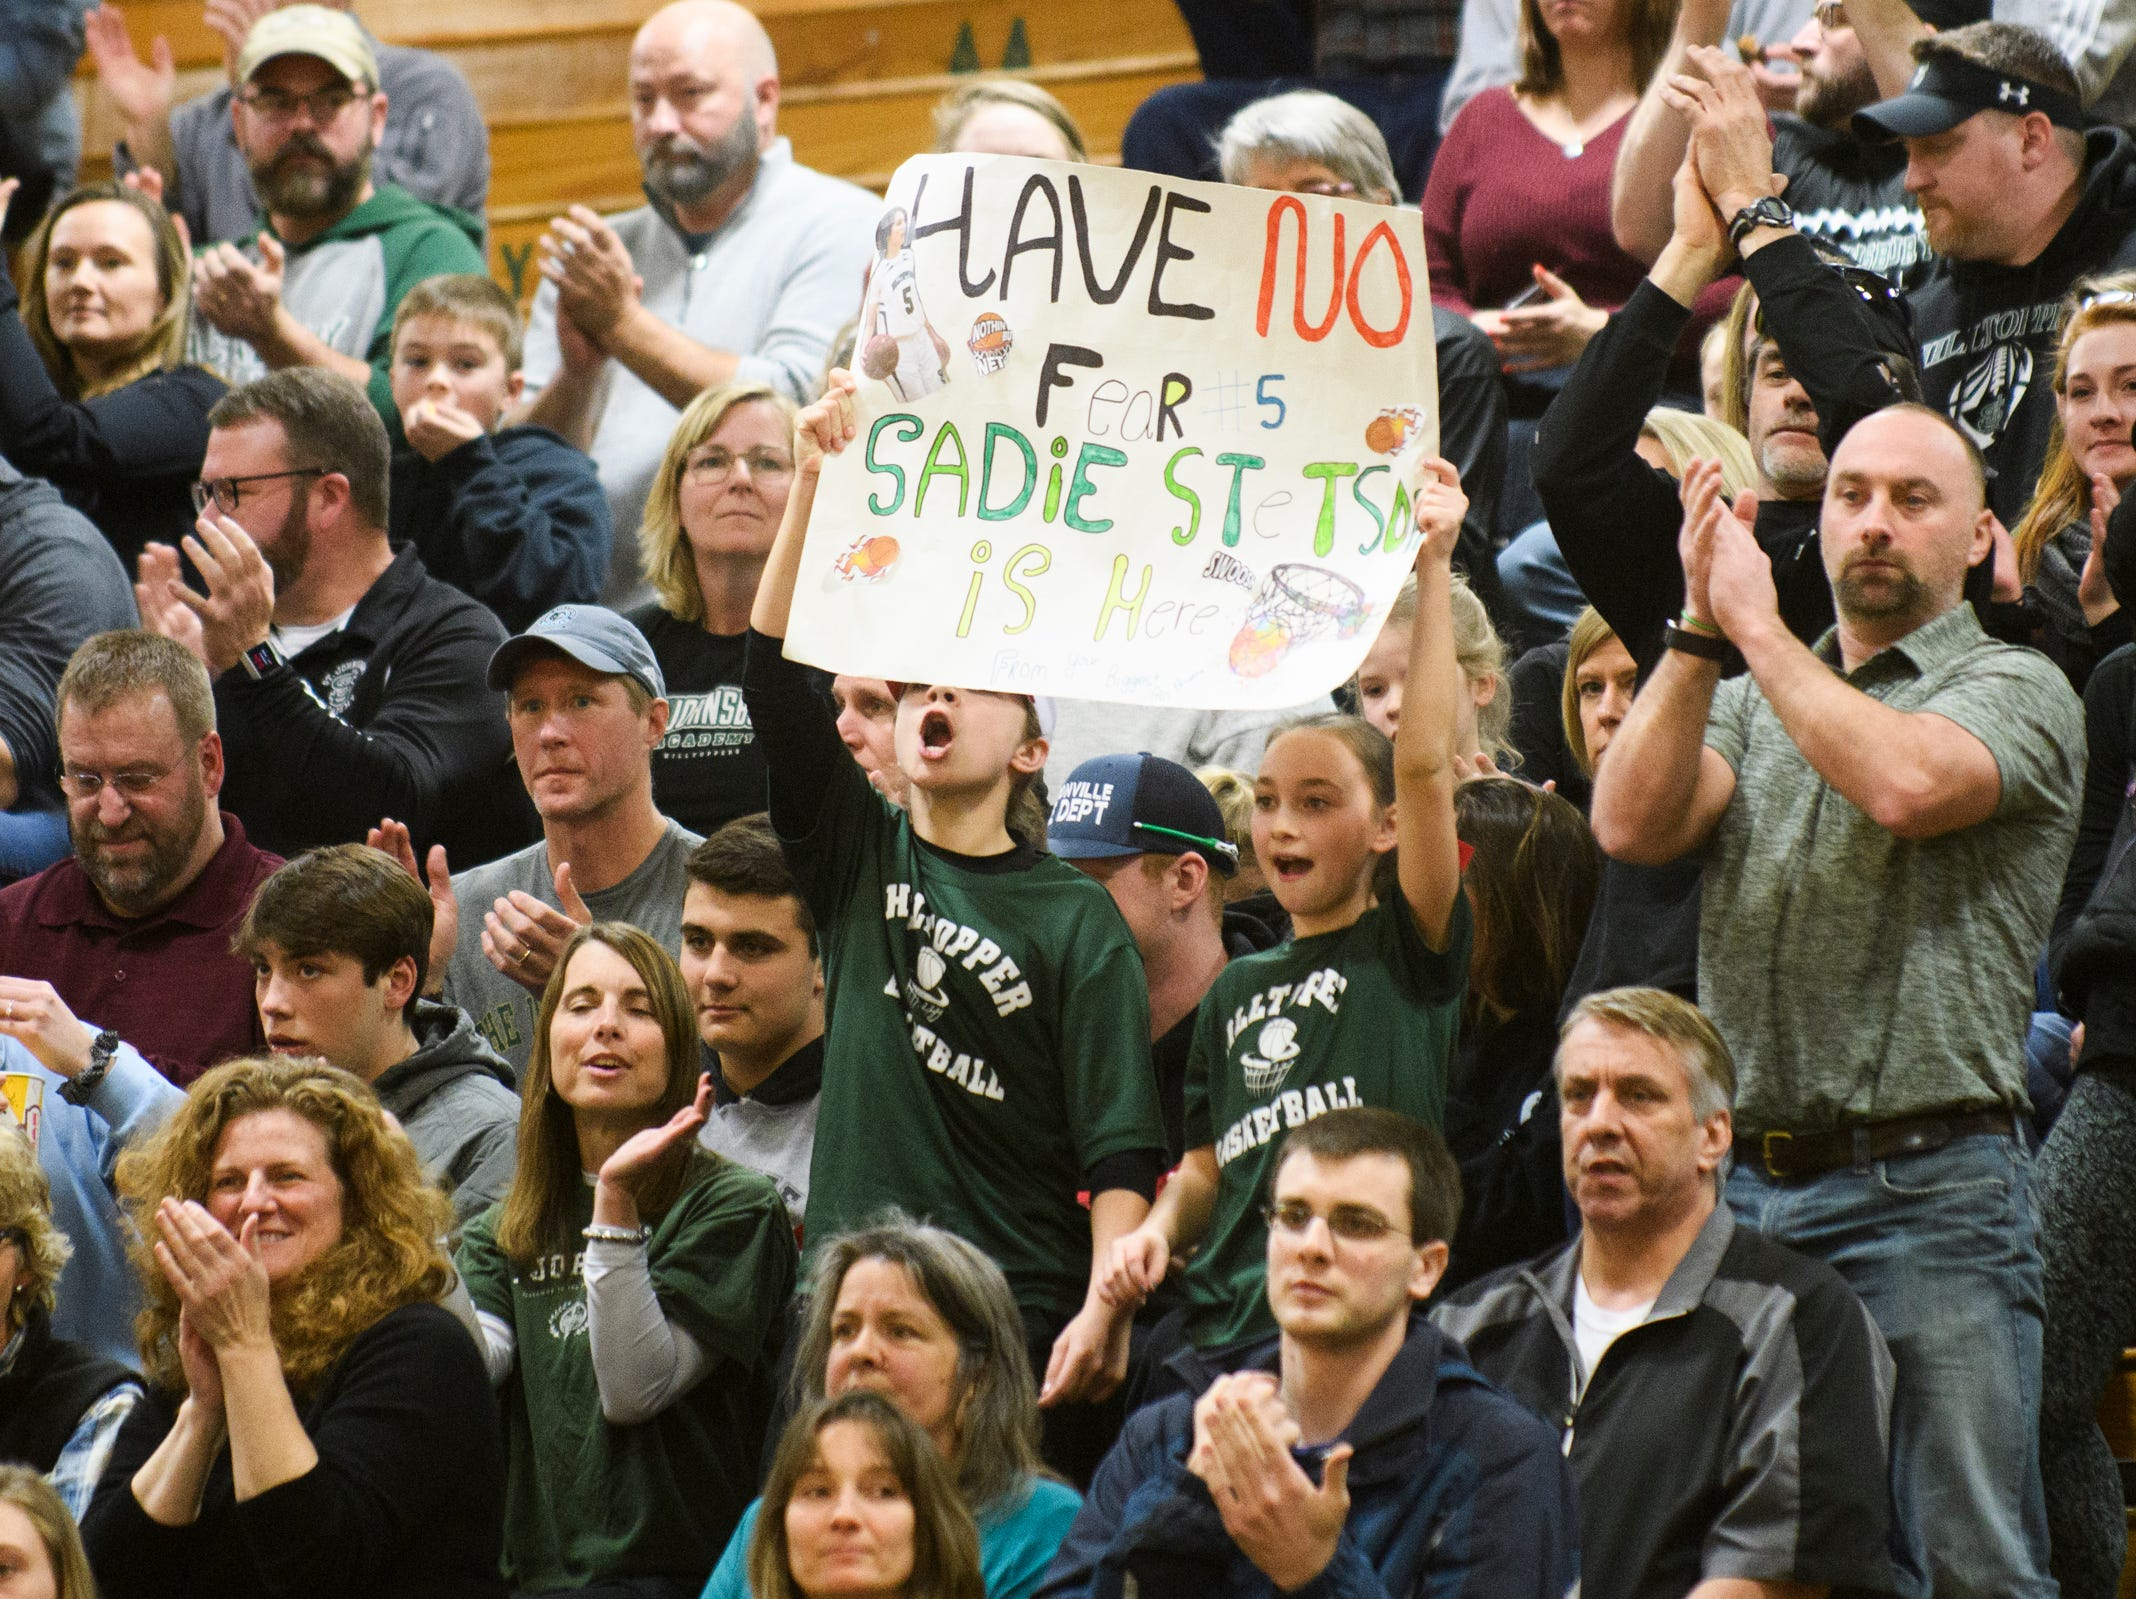 St. Johnsbury fans holds up a sign during the division I girls basketball championship basketball game between the St. Johnsbury Hilltoppers and the Champlain Valley Union Redhawks at Patrick Gym on Sunday afternoon March 10, 2019 in Burlington, Vermont.